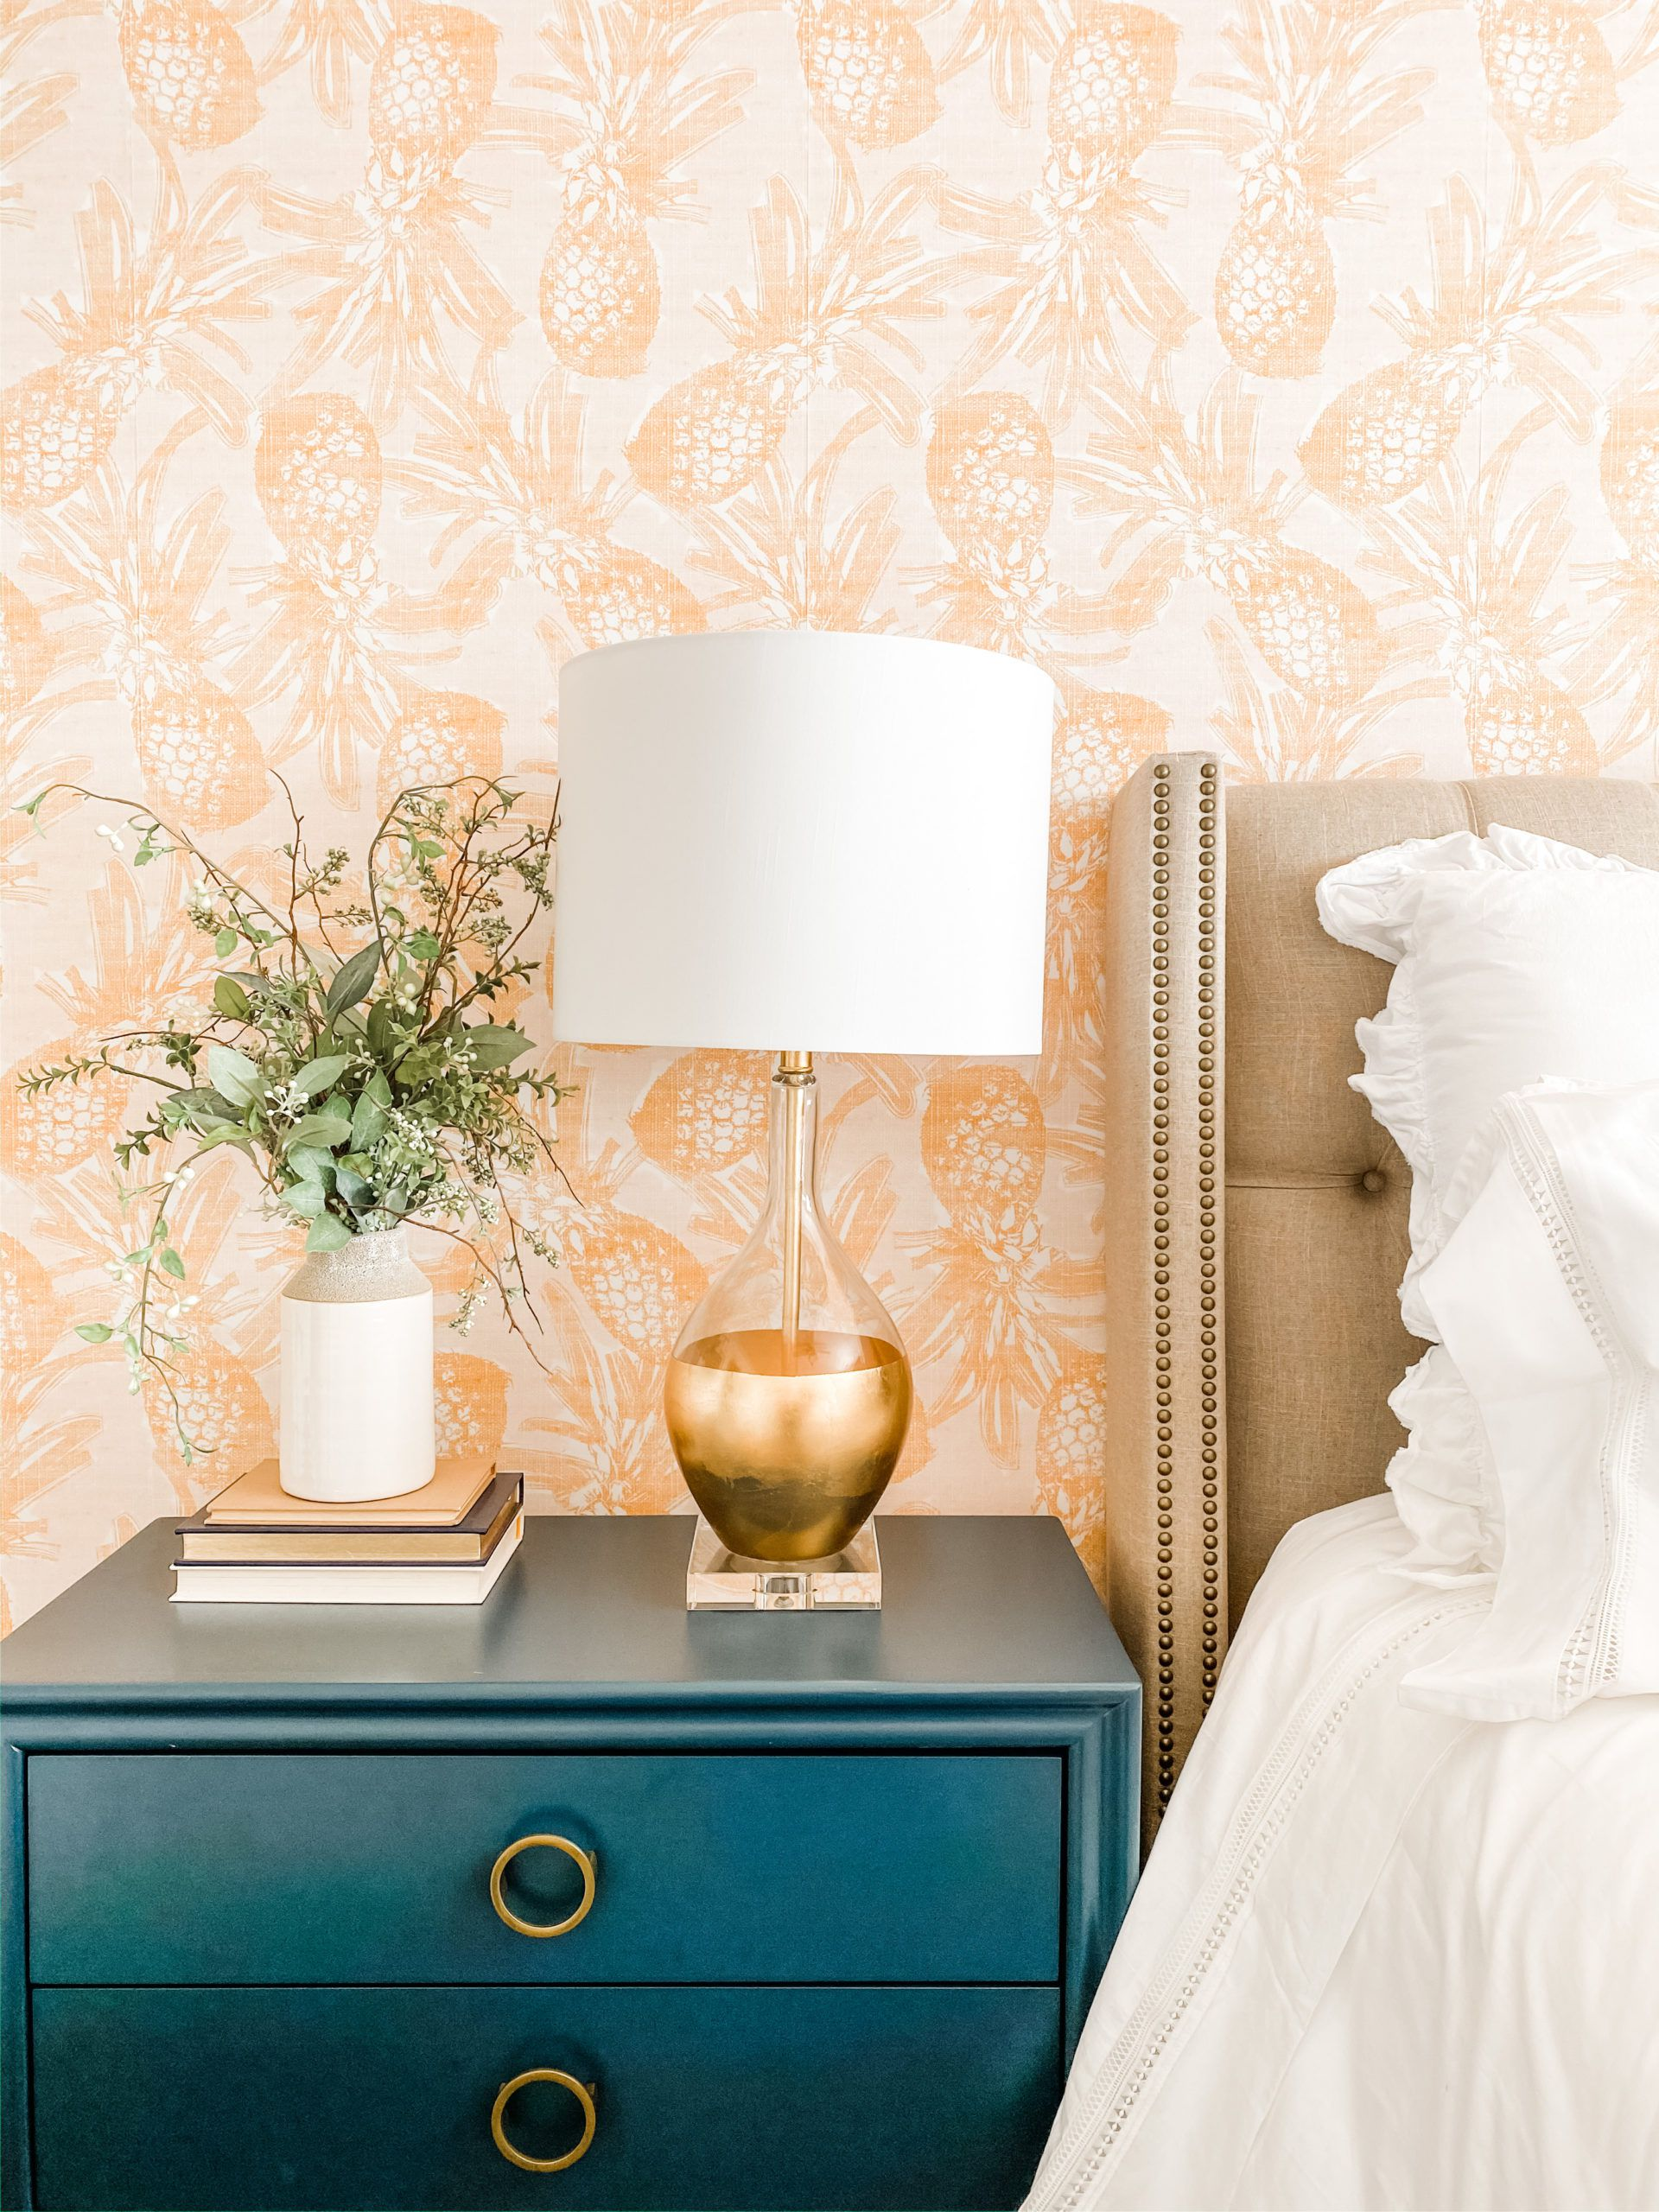 Calypso Wallpaper • Gold wallpaper • Pineapple Wallpaper • Tropical Wallpaper • Master Bedroom